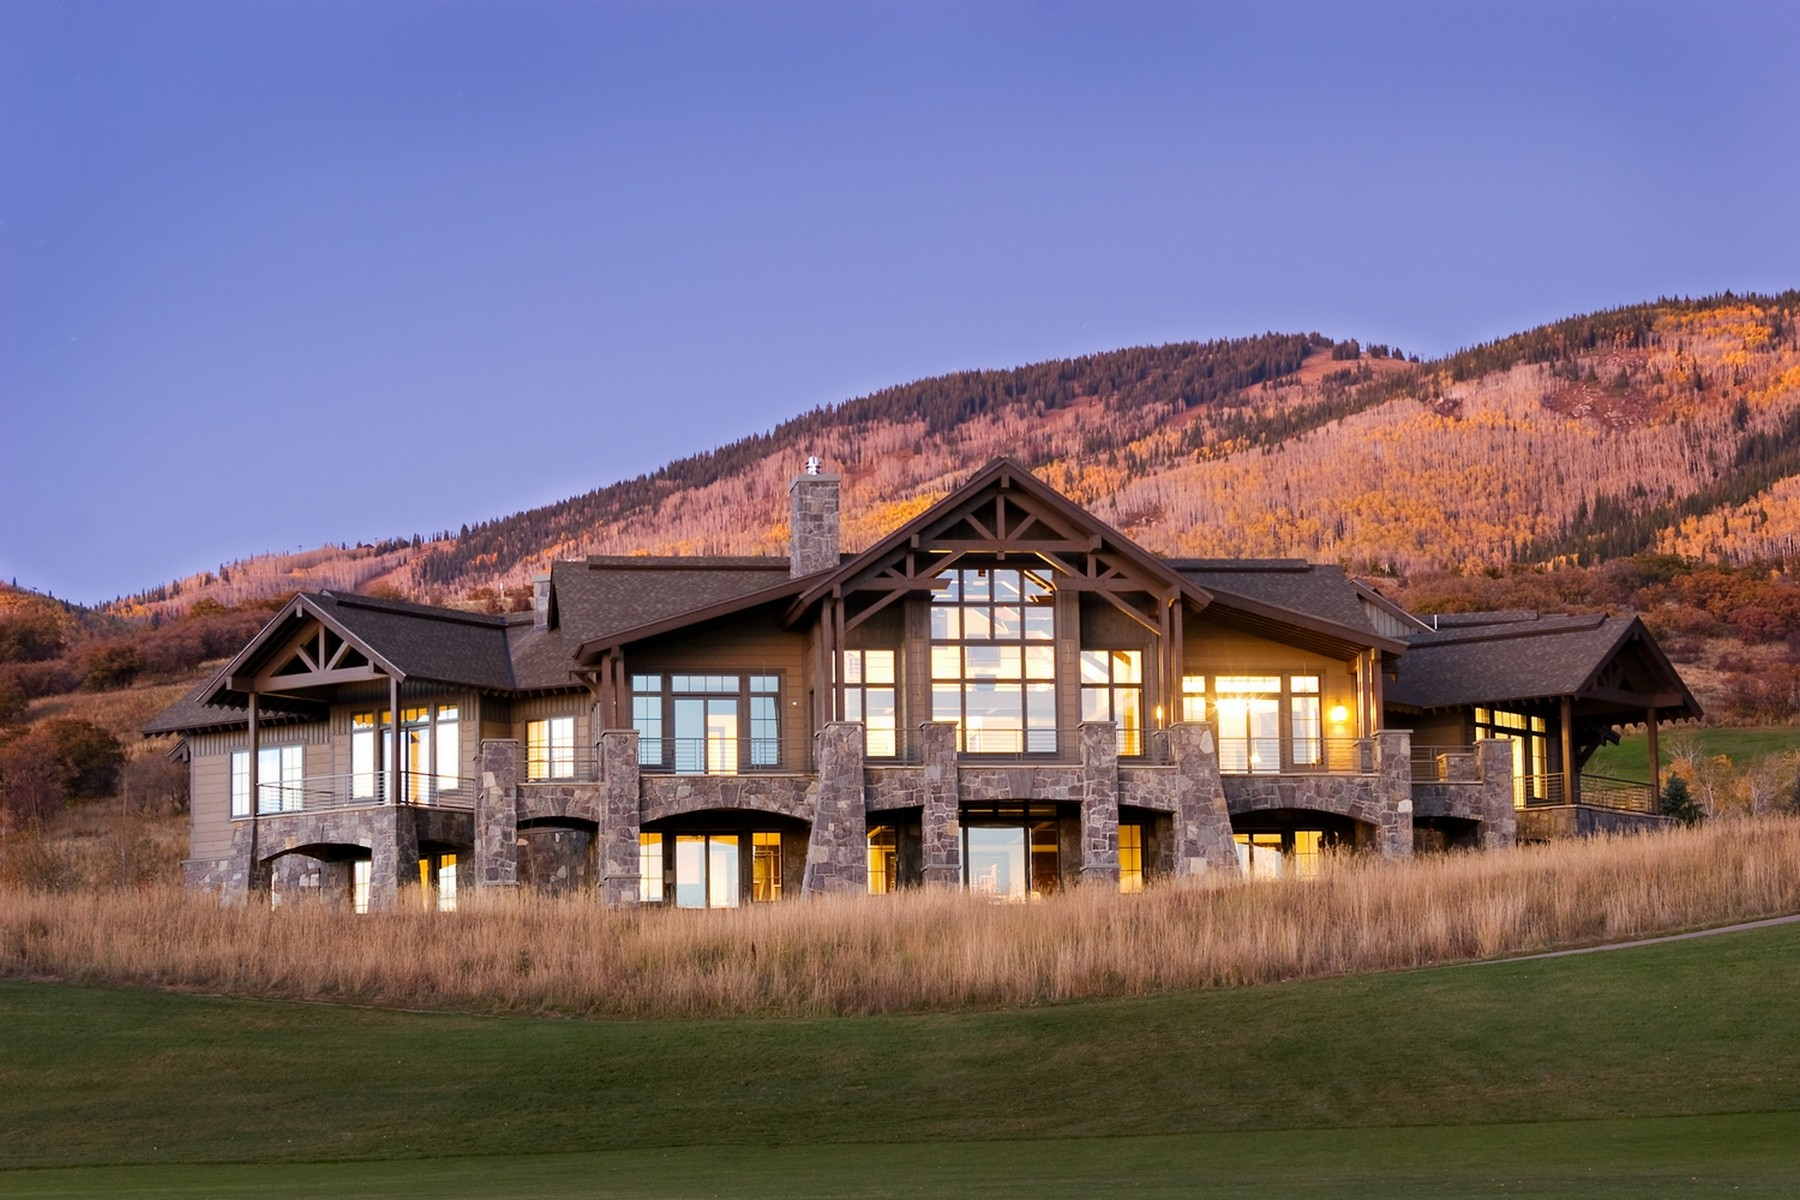 Single Family Home for Sale at 33560 Catamount Drive Steamboat Springs, Colorado 80487 United States